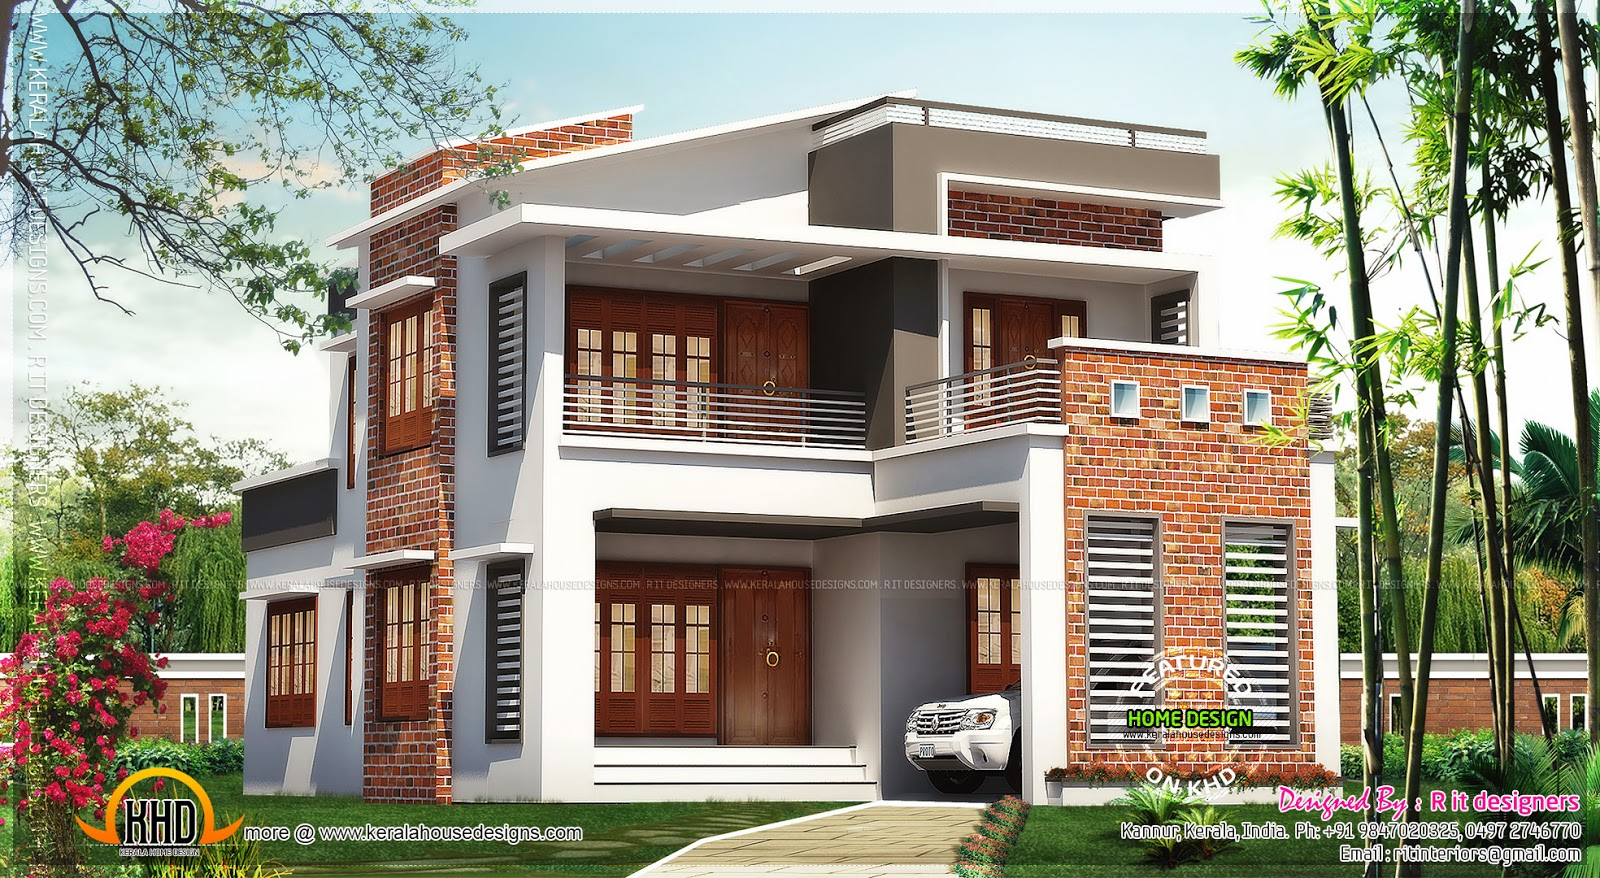 Brick mix house exterior design kerala home design and for Wall design outside house